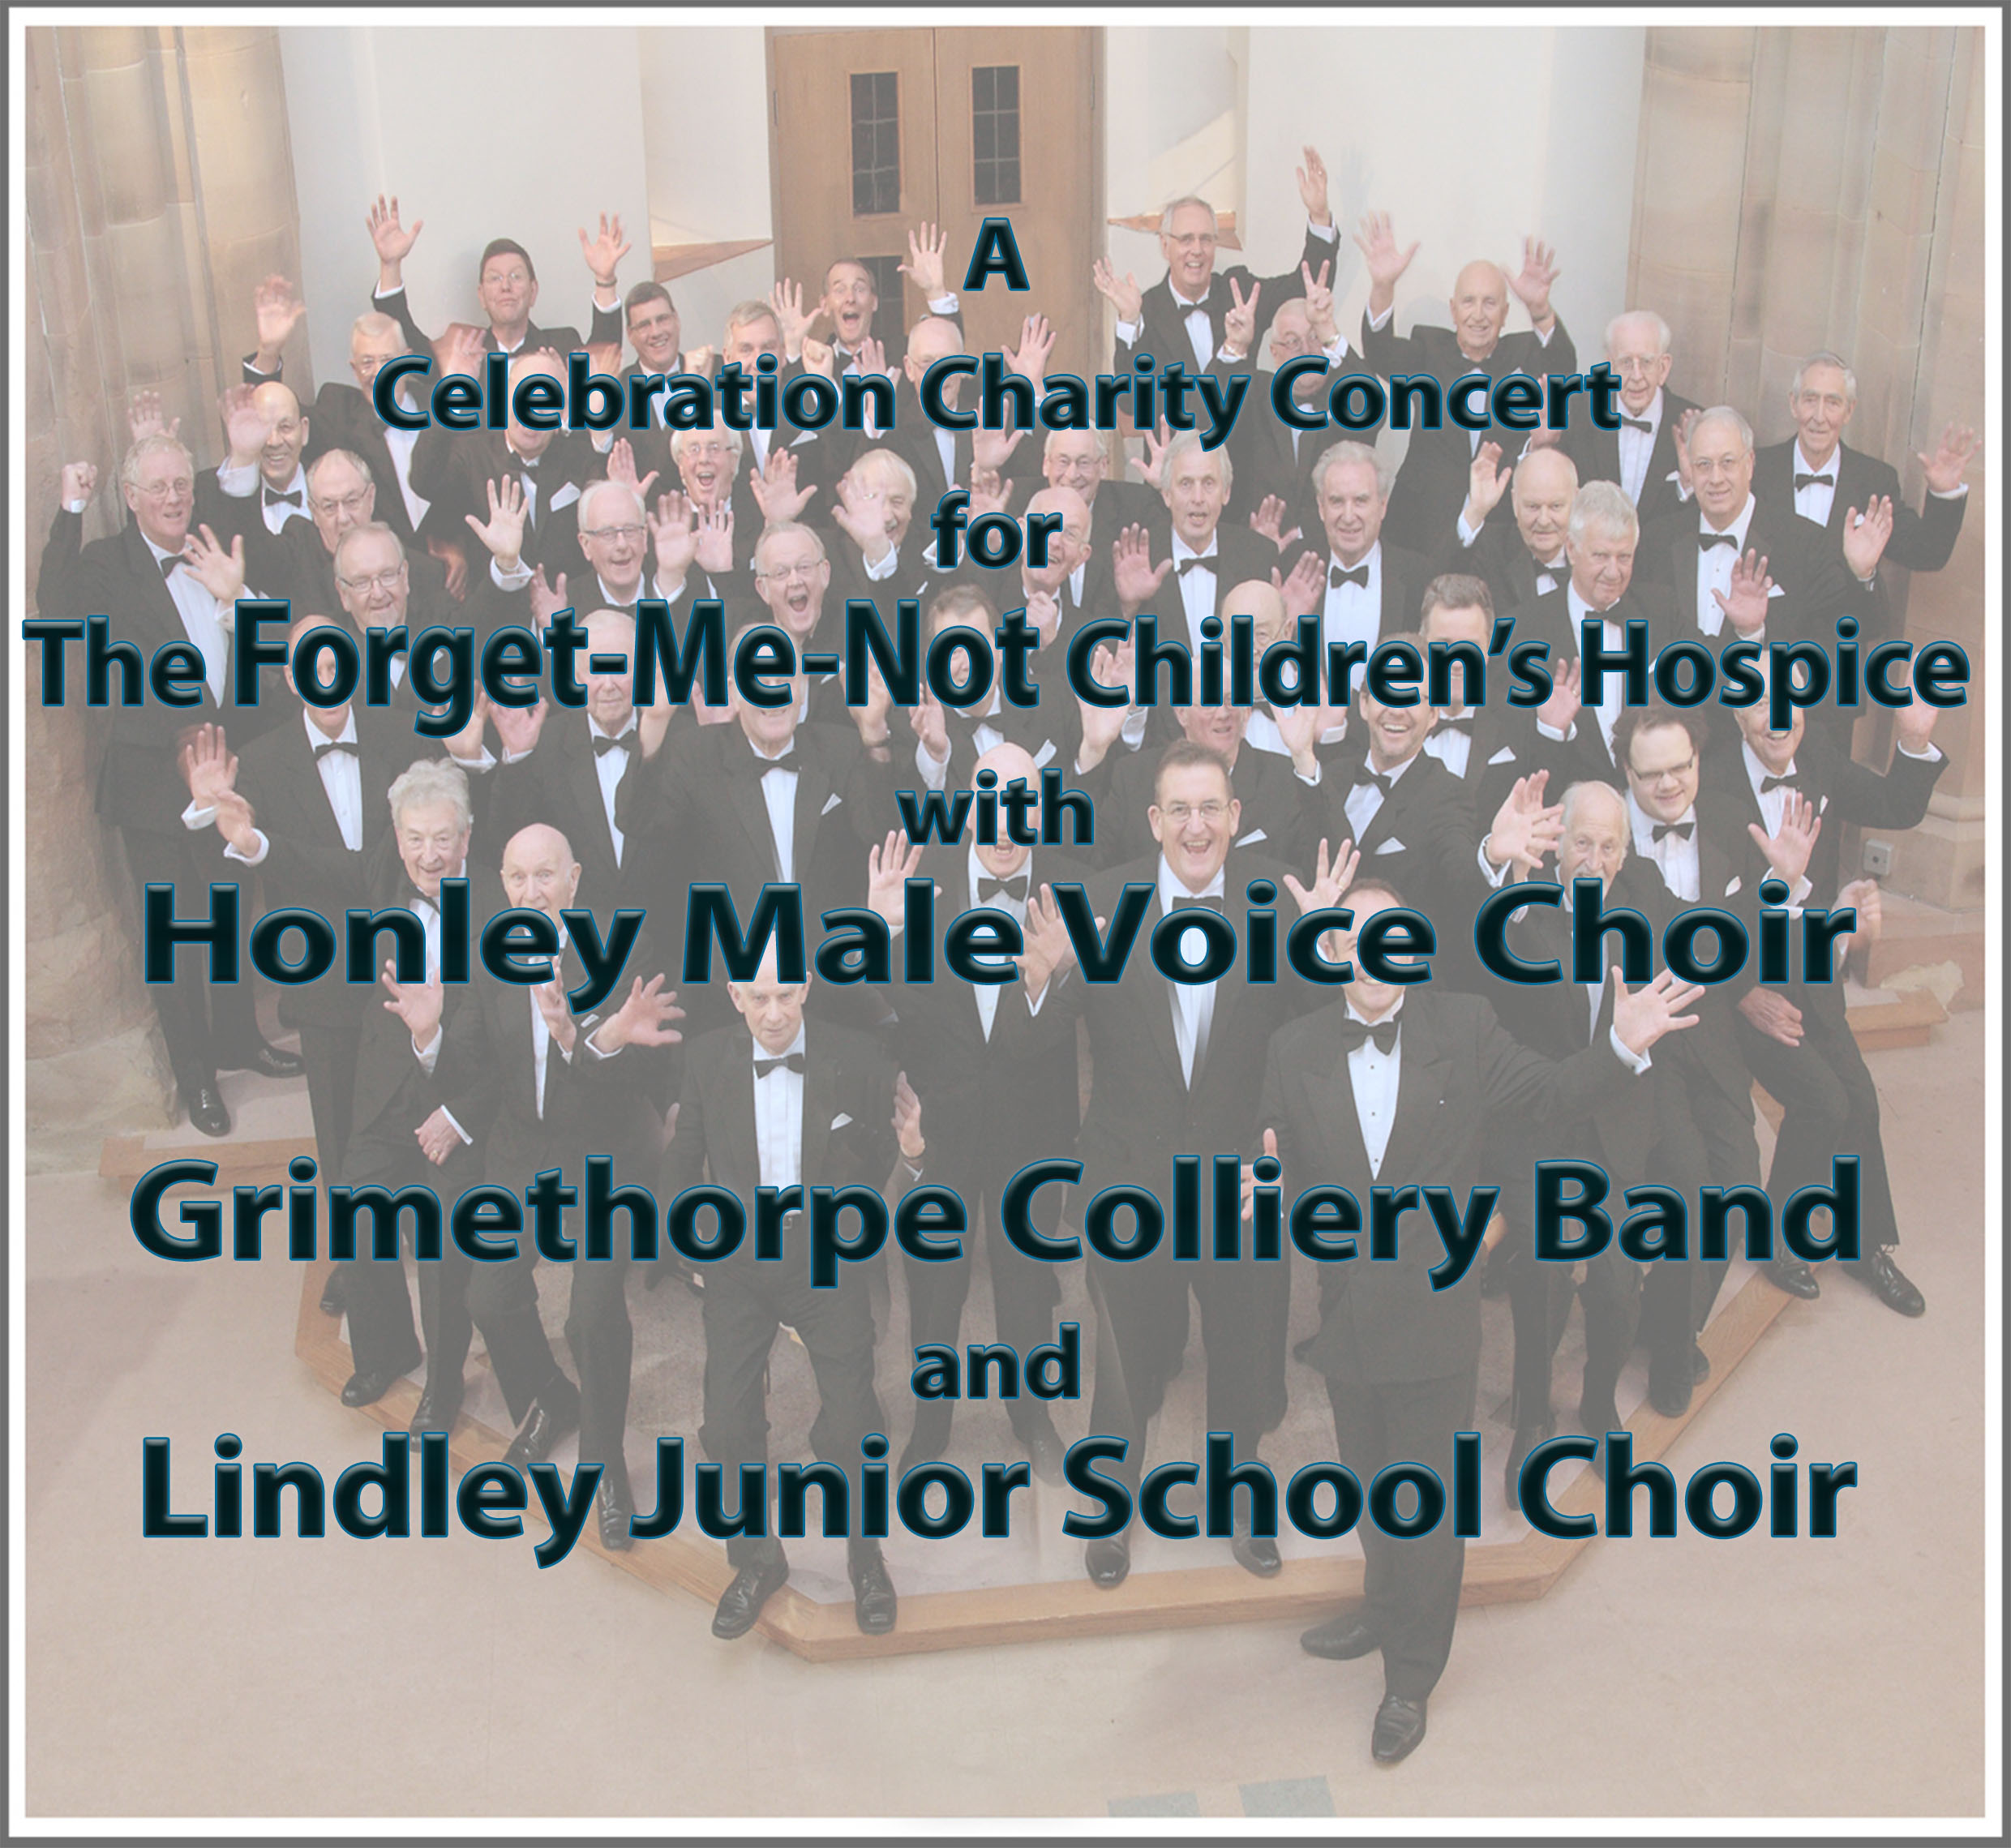 A feast of music with Honley Male Voice Choir and special guests - Grimethorpe Colliery Band of 'Brassed Off' fame  and Lindley Junior School Choir, BBC Junior Choir Of The Year 2016. In Aid of the Forget-Me-Not Children's Hospice.